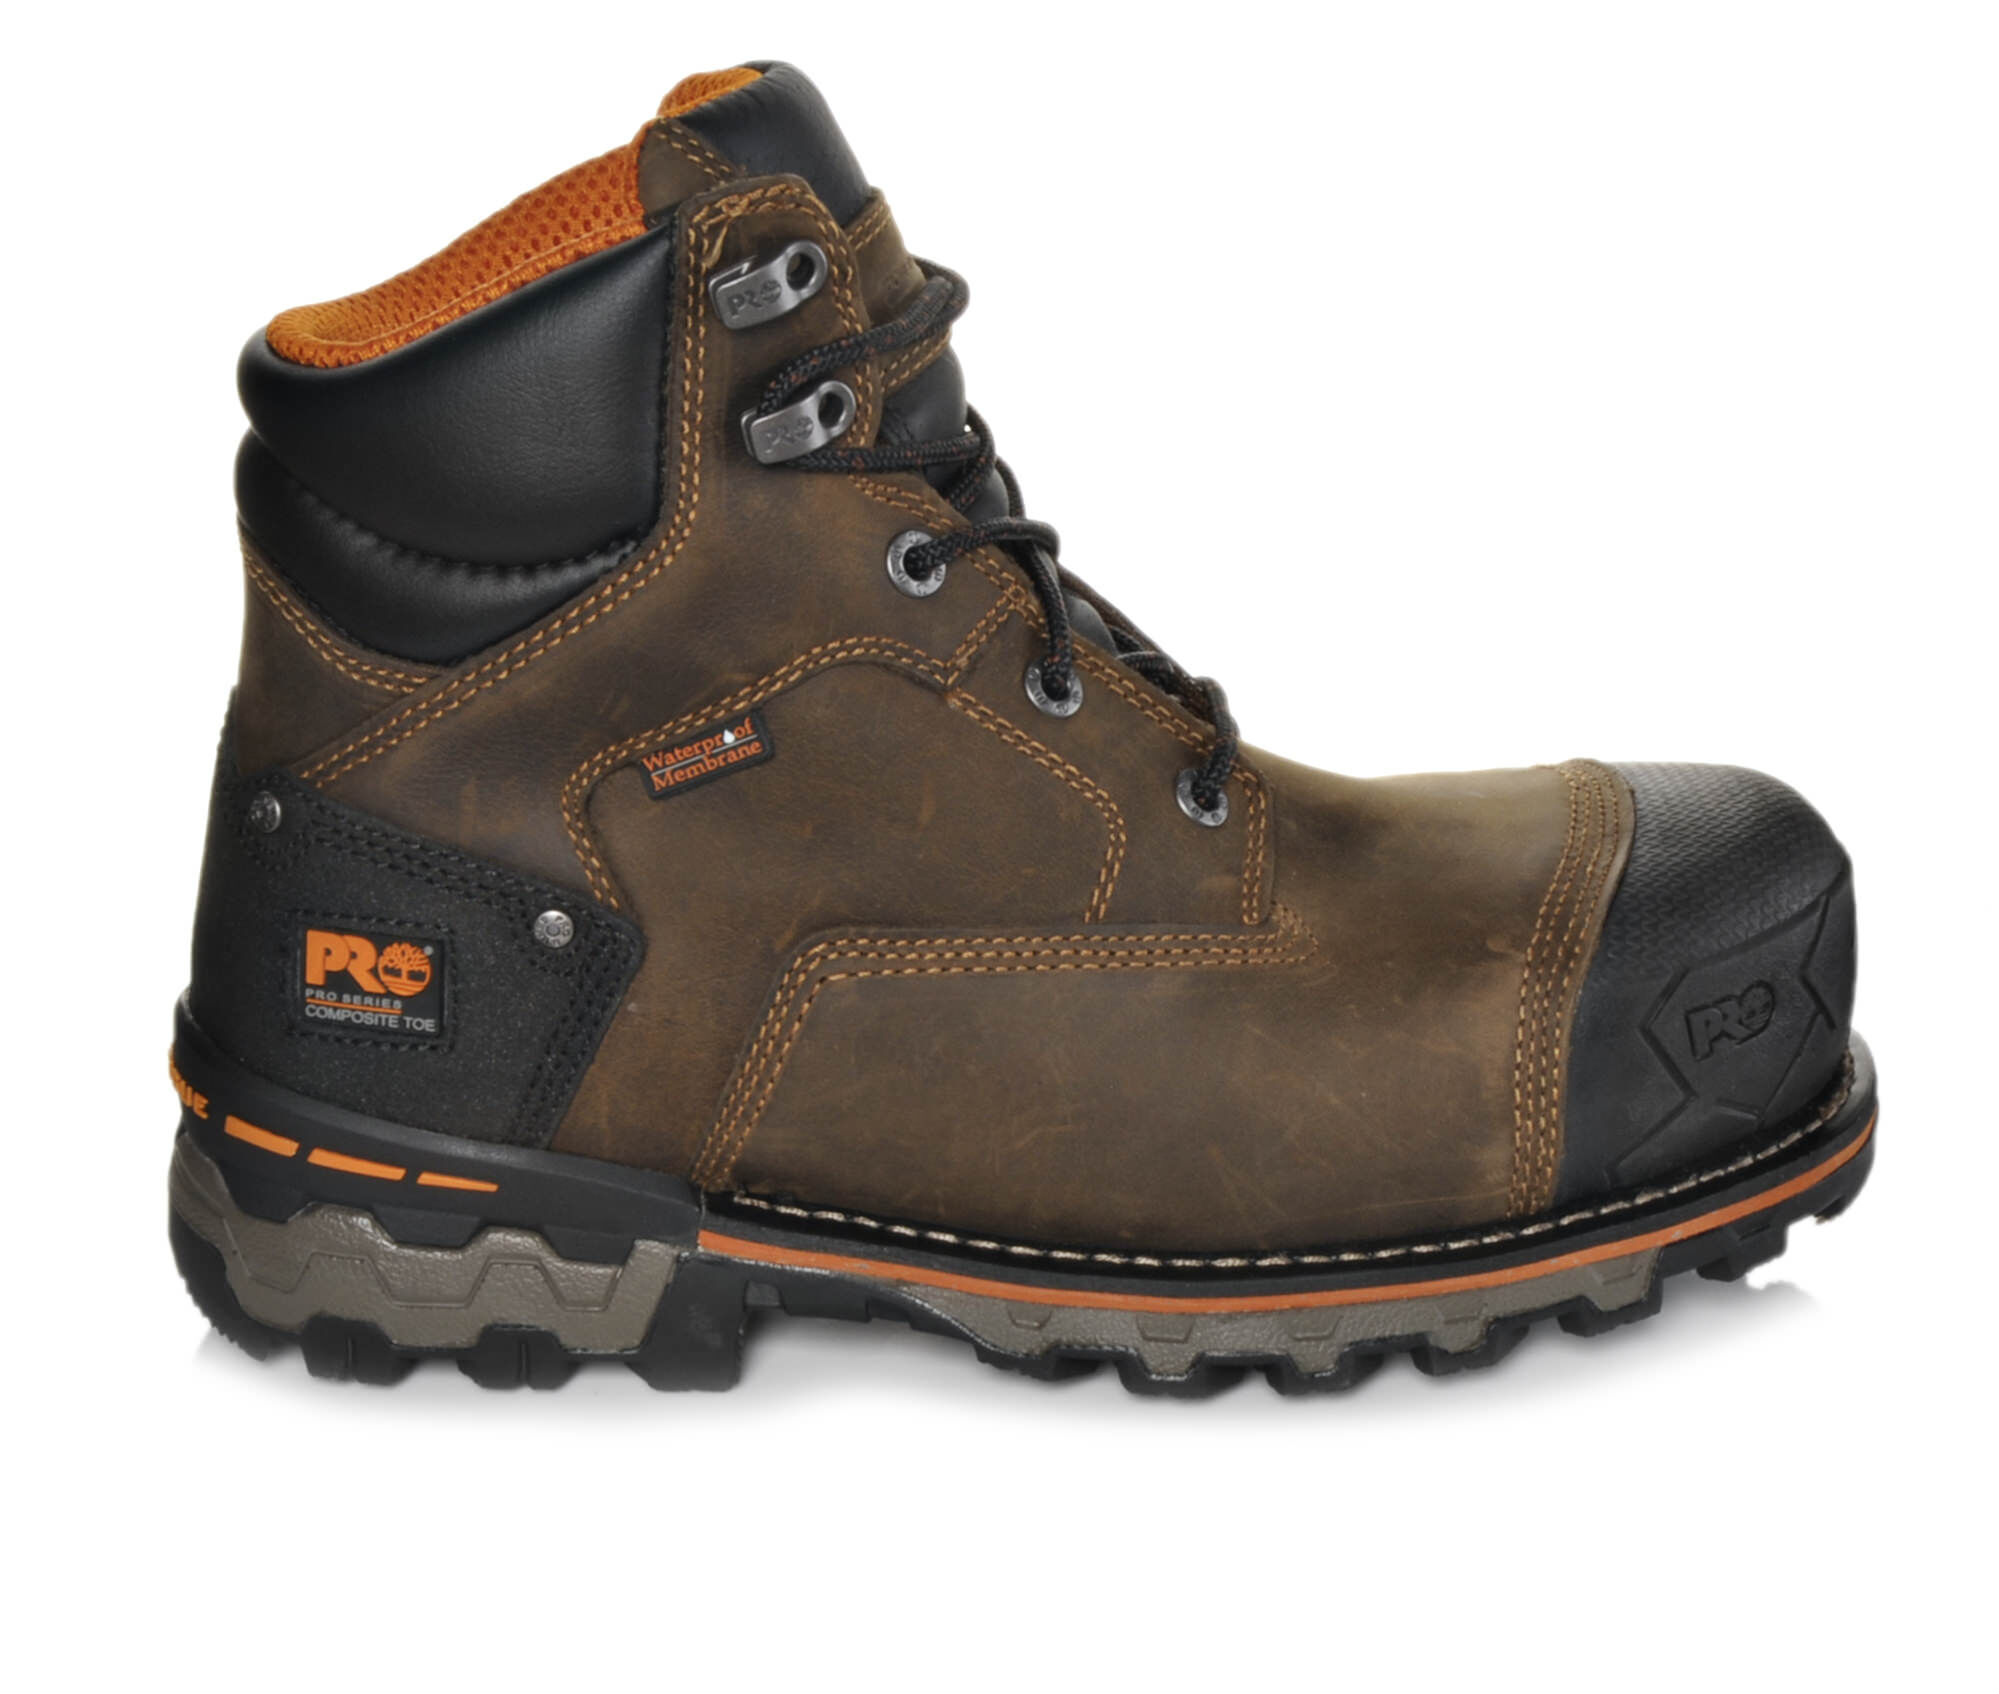 Men's Timberland Pro 92615 Boondock Composite Toe Work Boots Brown Oiled